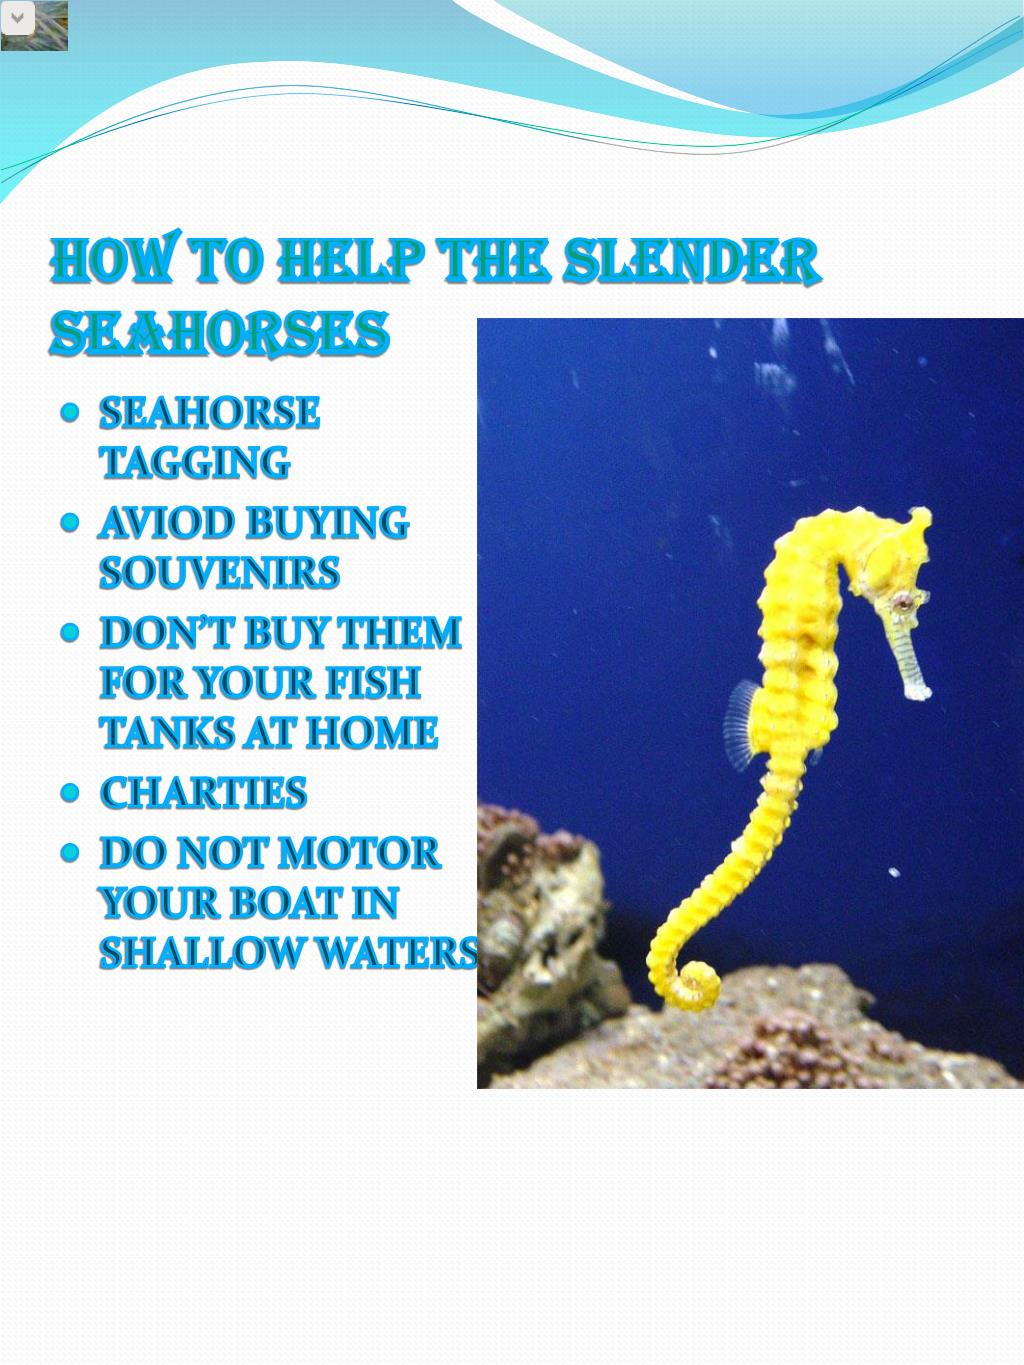 HOW TO HELP THE SLENDER SEAHORSES